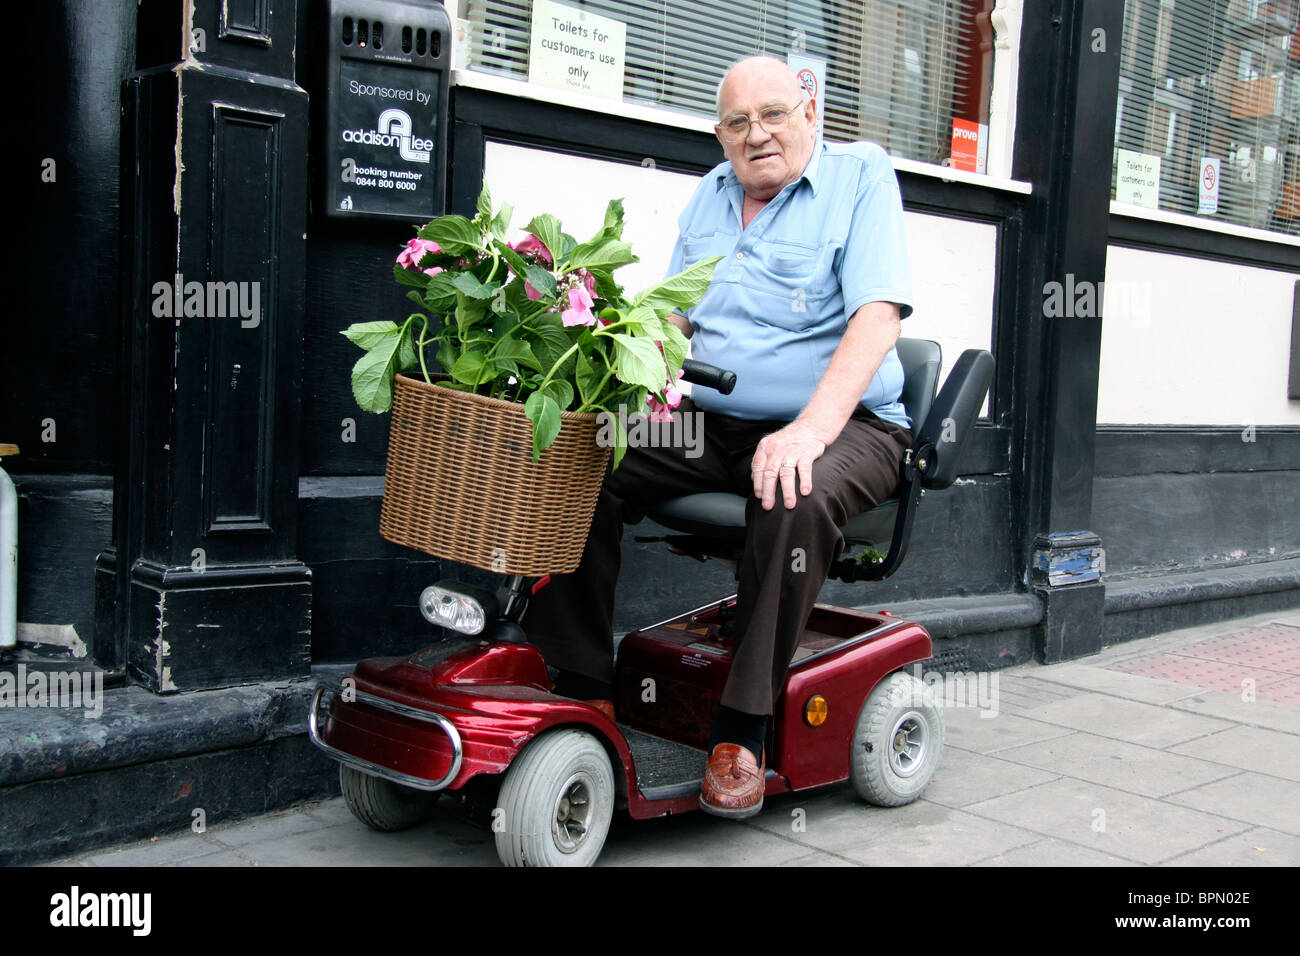 Elderly Man On His Mobility Scooter Outside A Pub In East